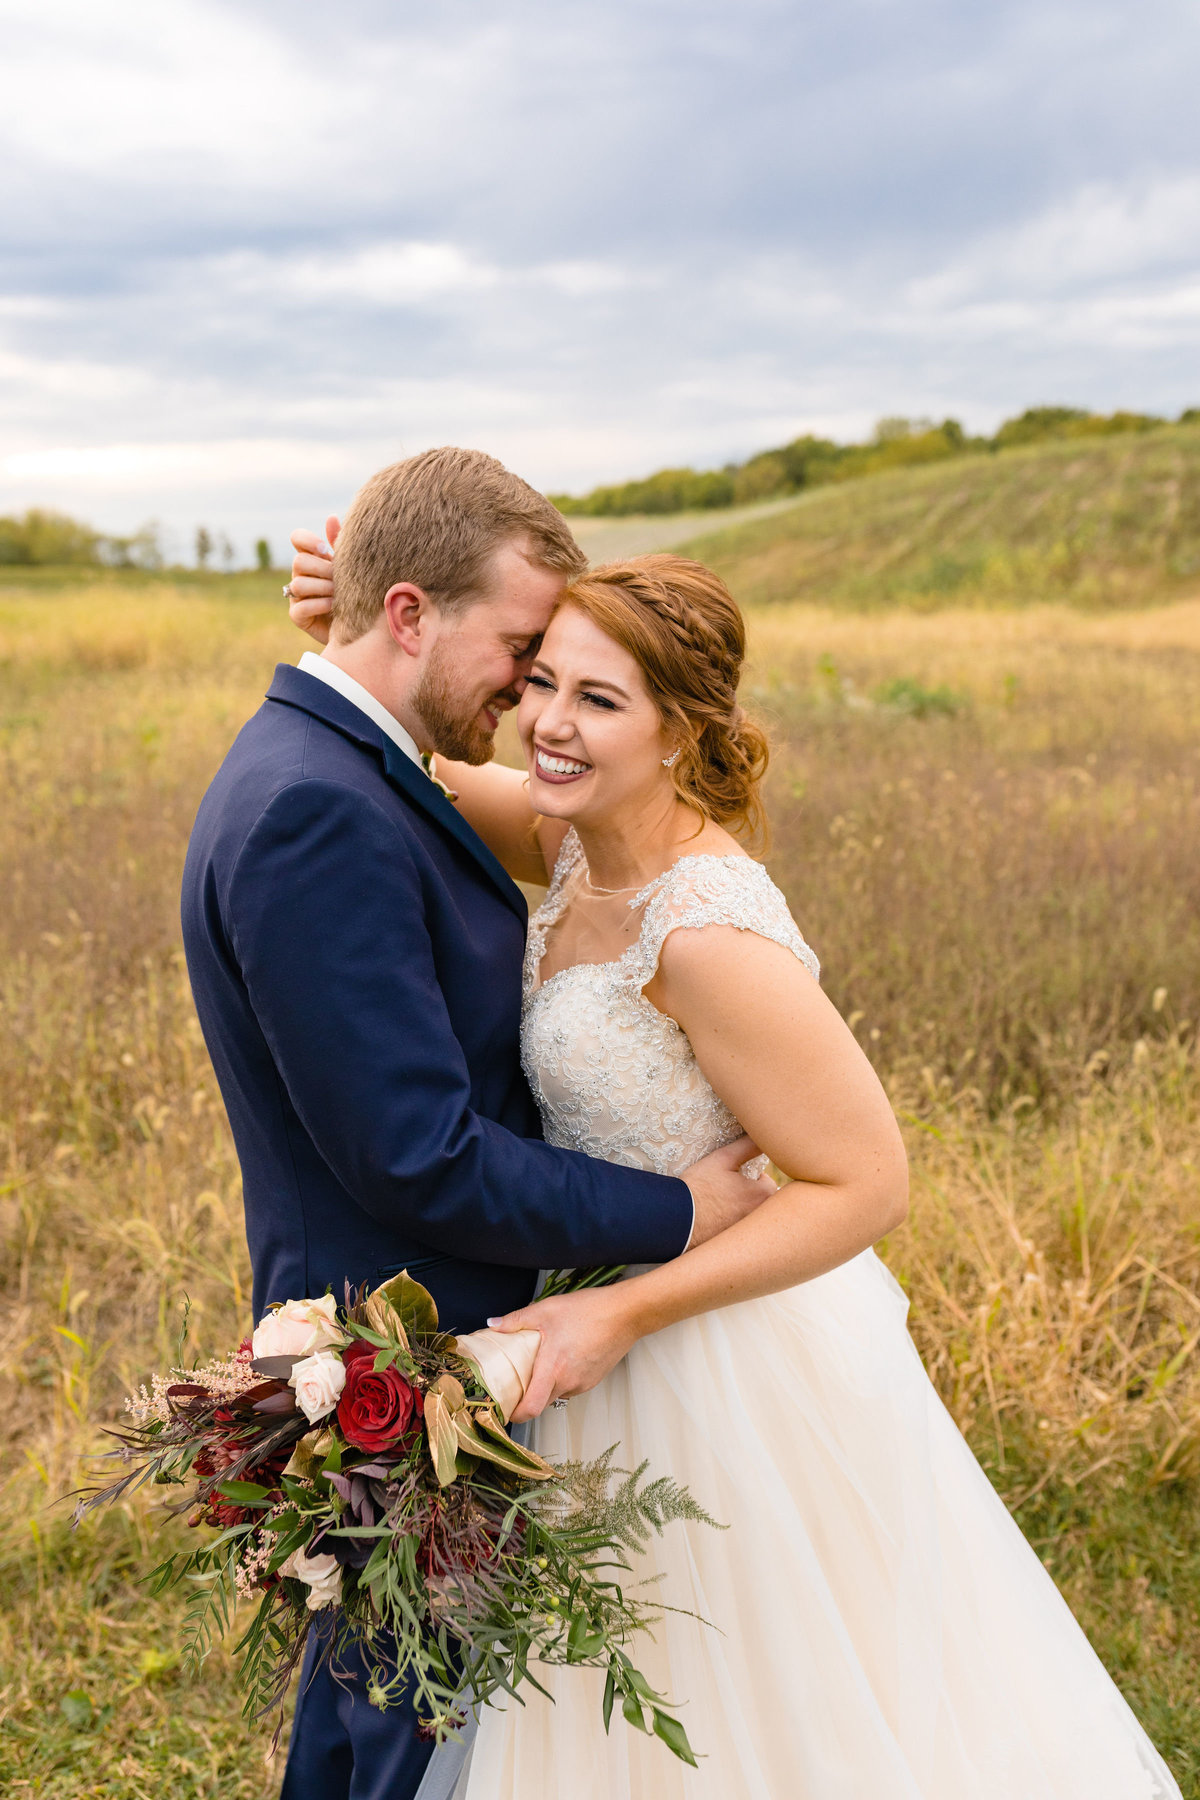 2019-10-05-Dauterman-Schlaeger-Wedding2093-661